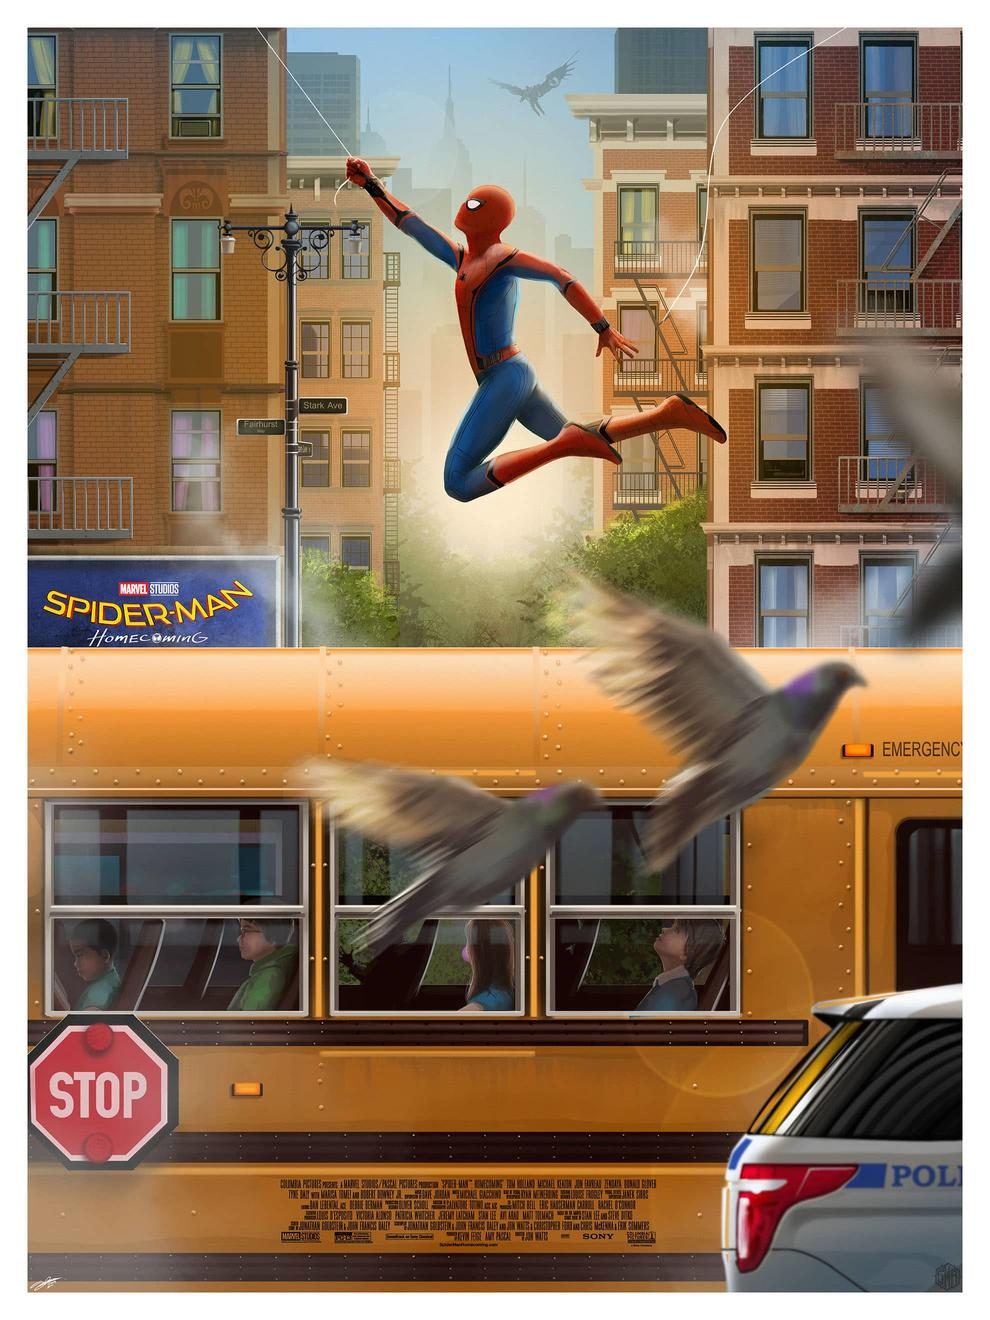 Spider-Man Homecoming by Andy Fairhurst